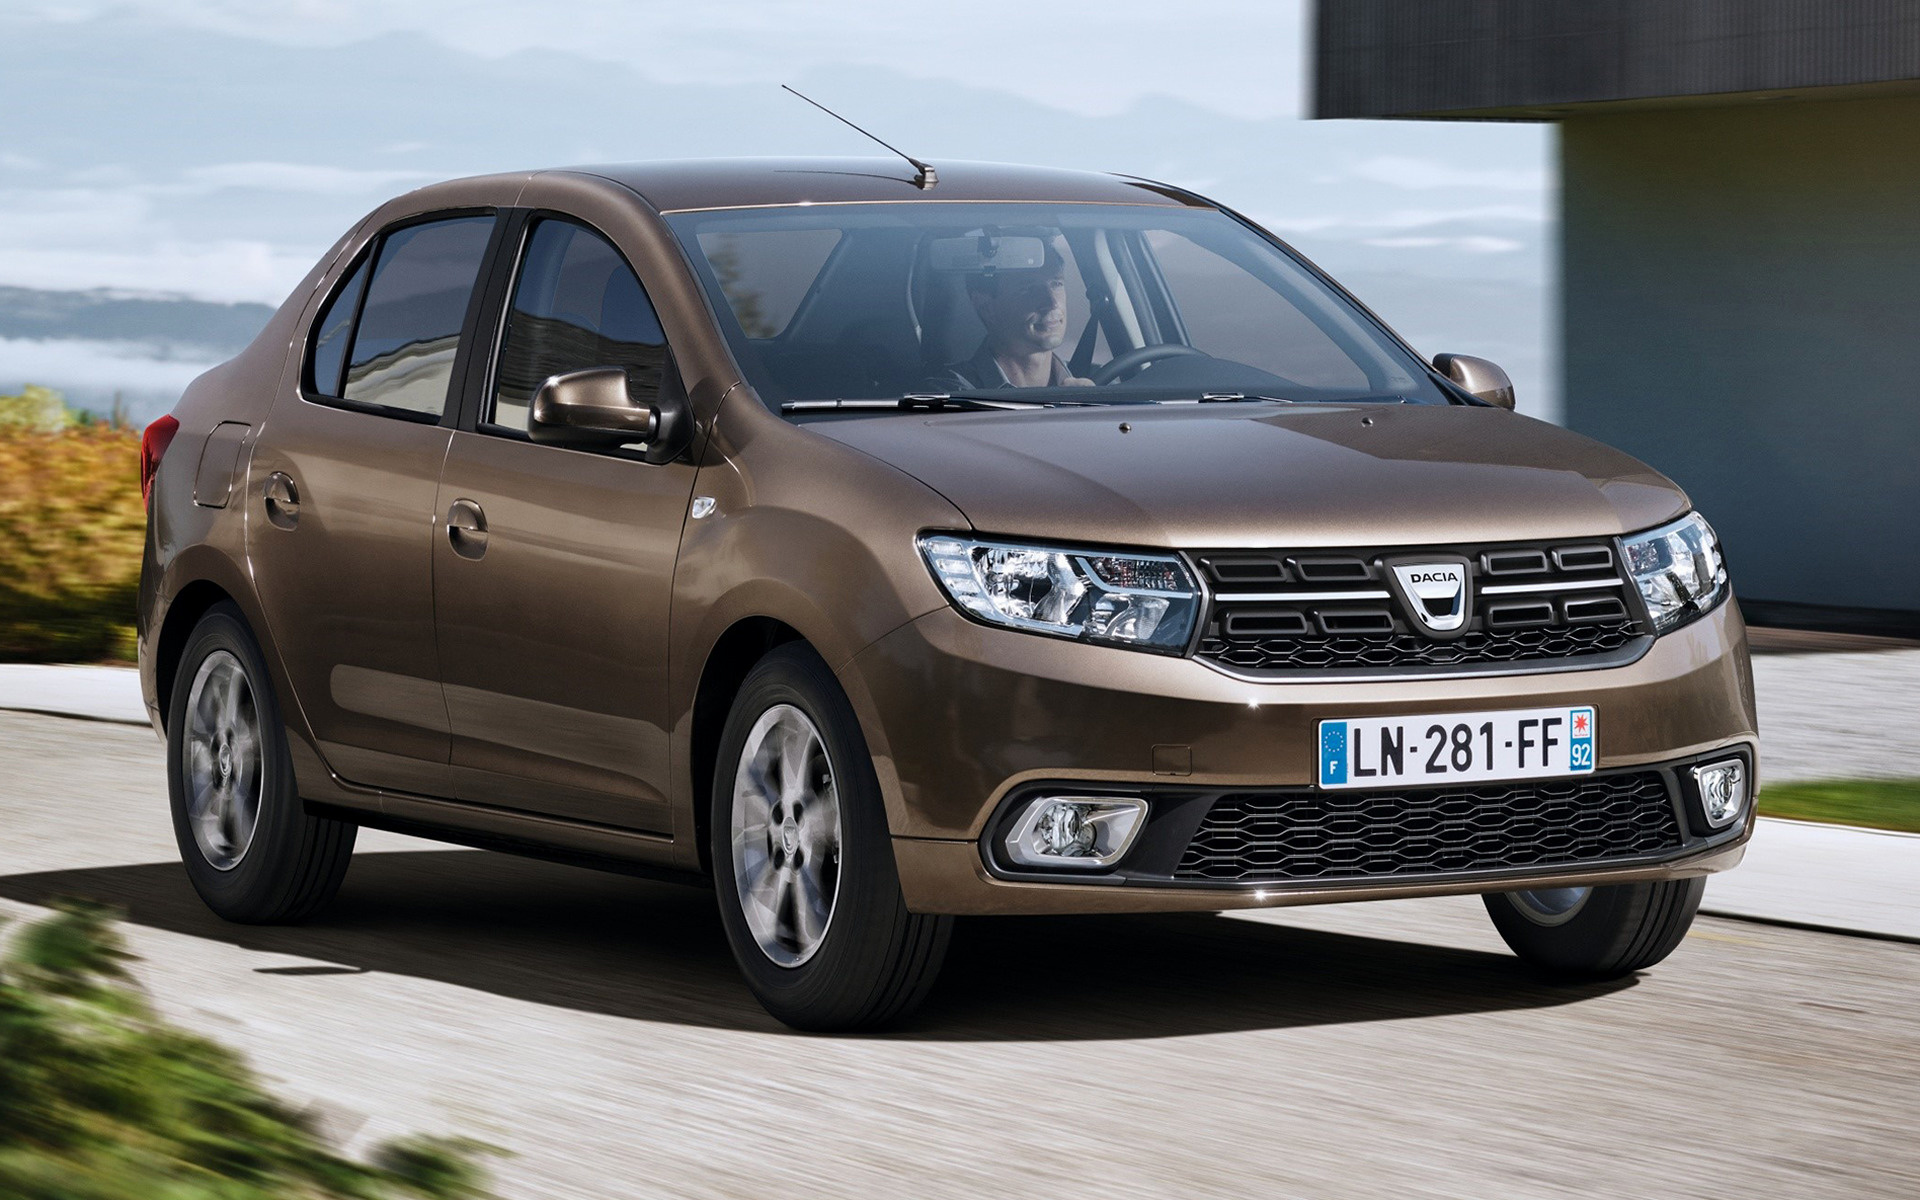 dacia logan 2016 wallpapers and hd images car pixel. Black Bedroom Furniture Sets. Home Design Ideas